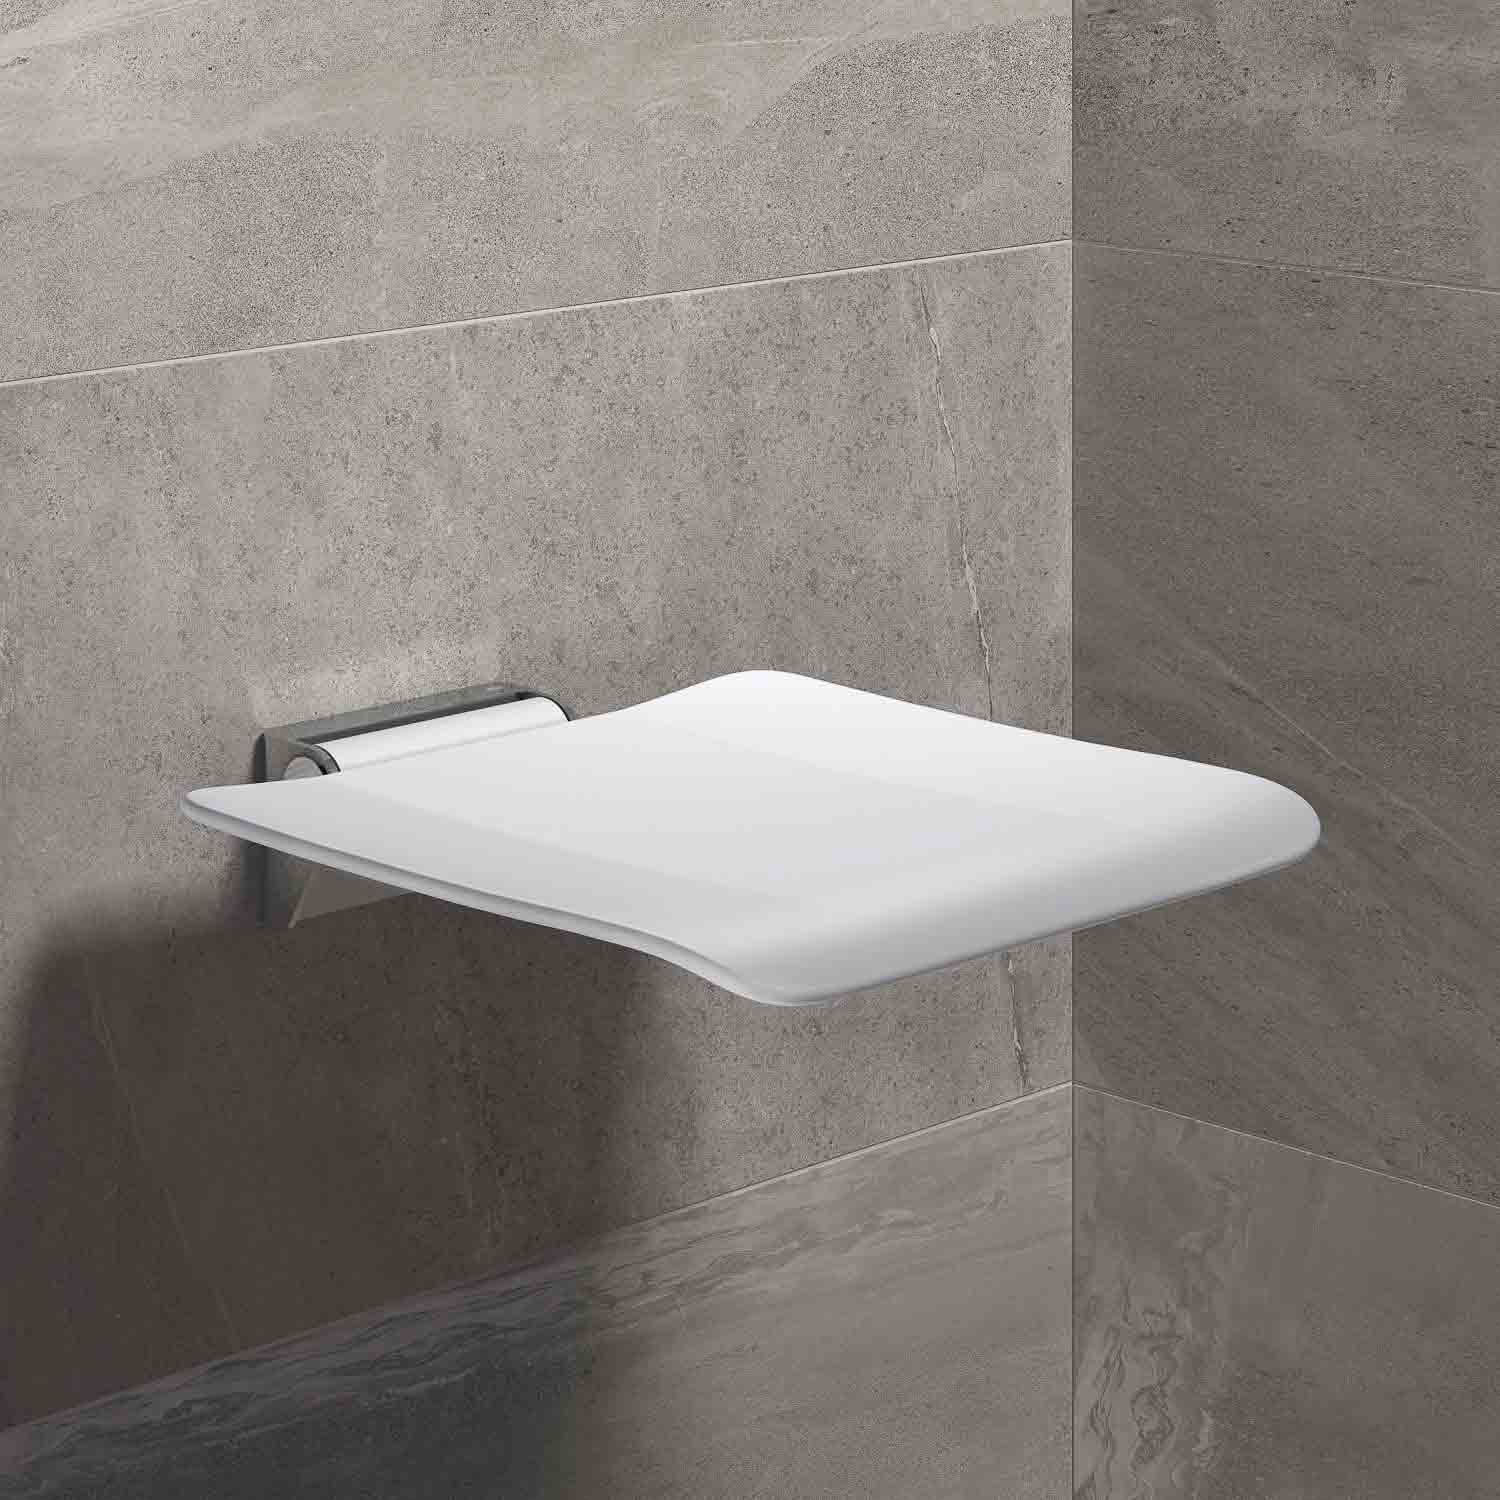 Freestyle Removable Shower Seat with a white seat and chrome bracket lifestyle image